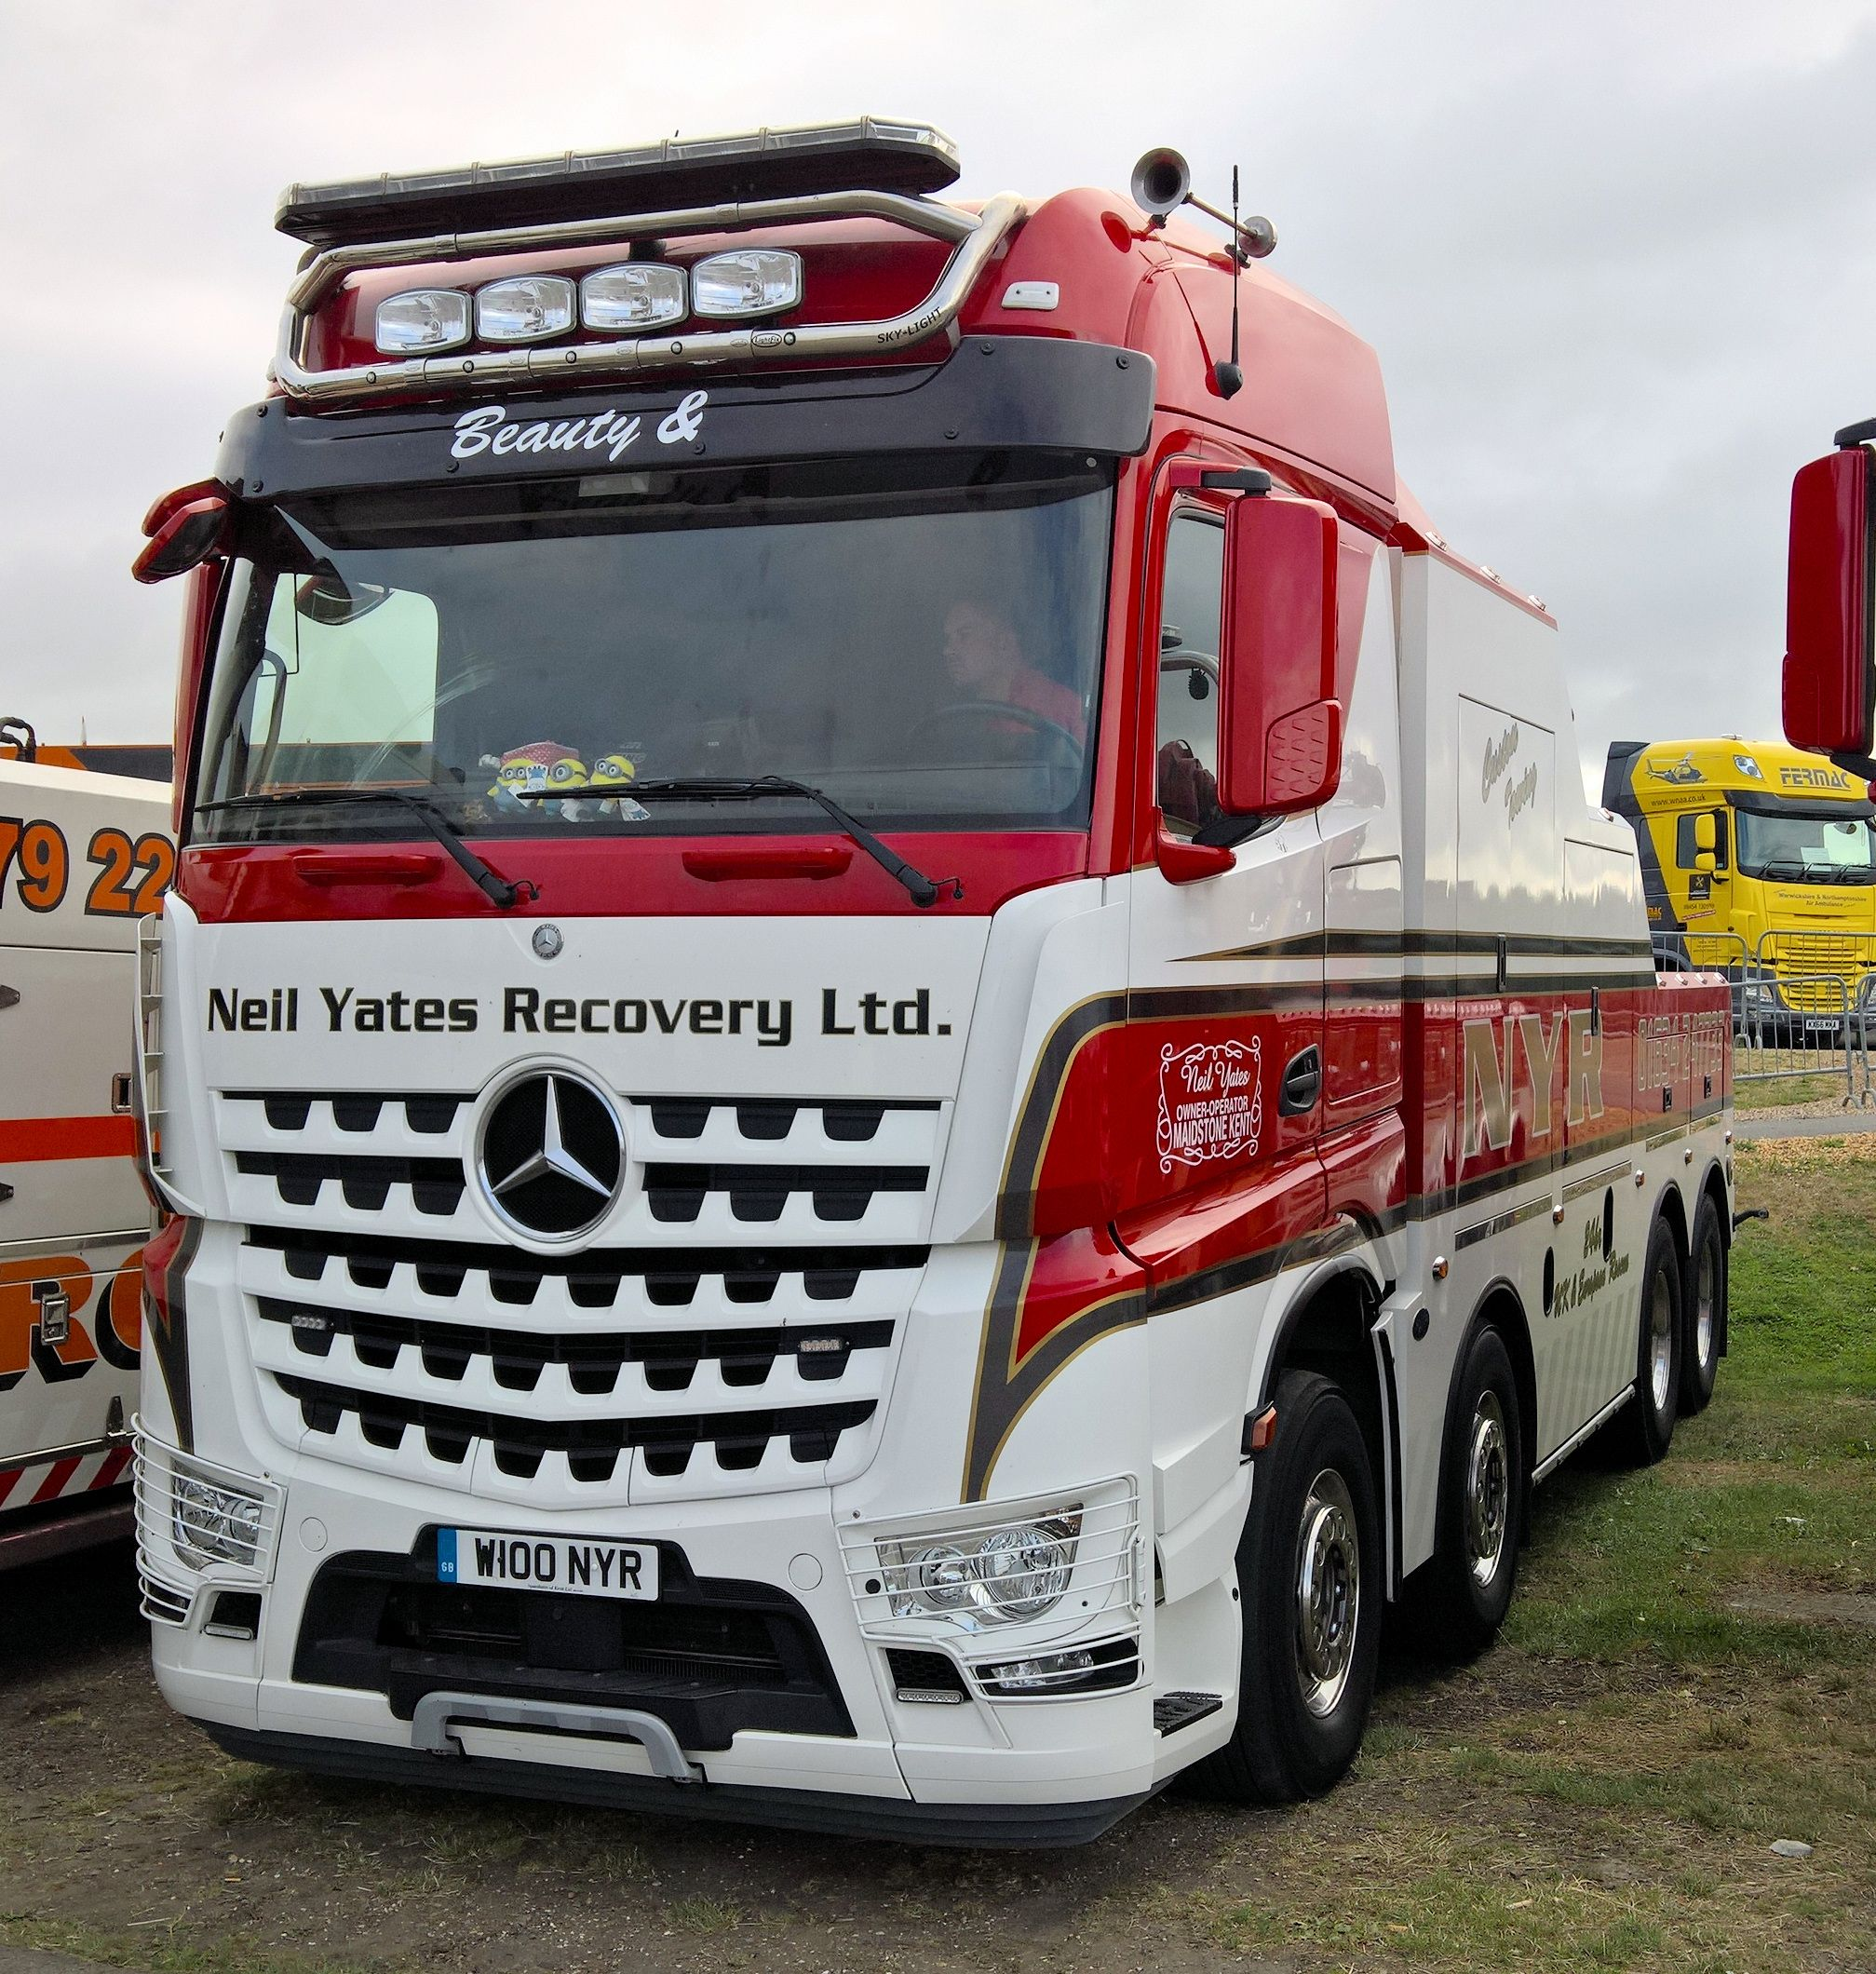 Mercedes arocs nyr recovery silverstone 2016